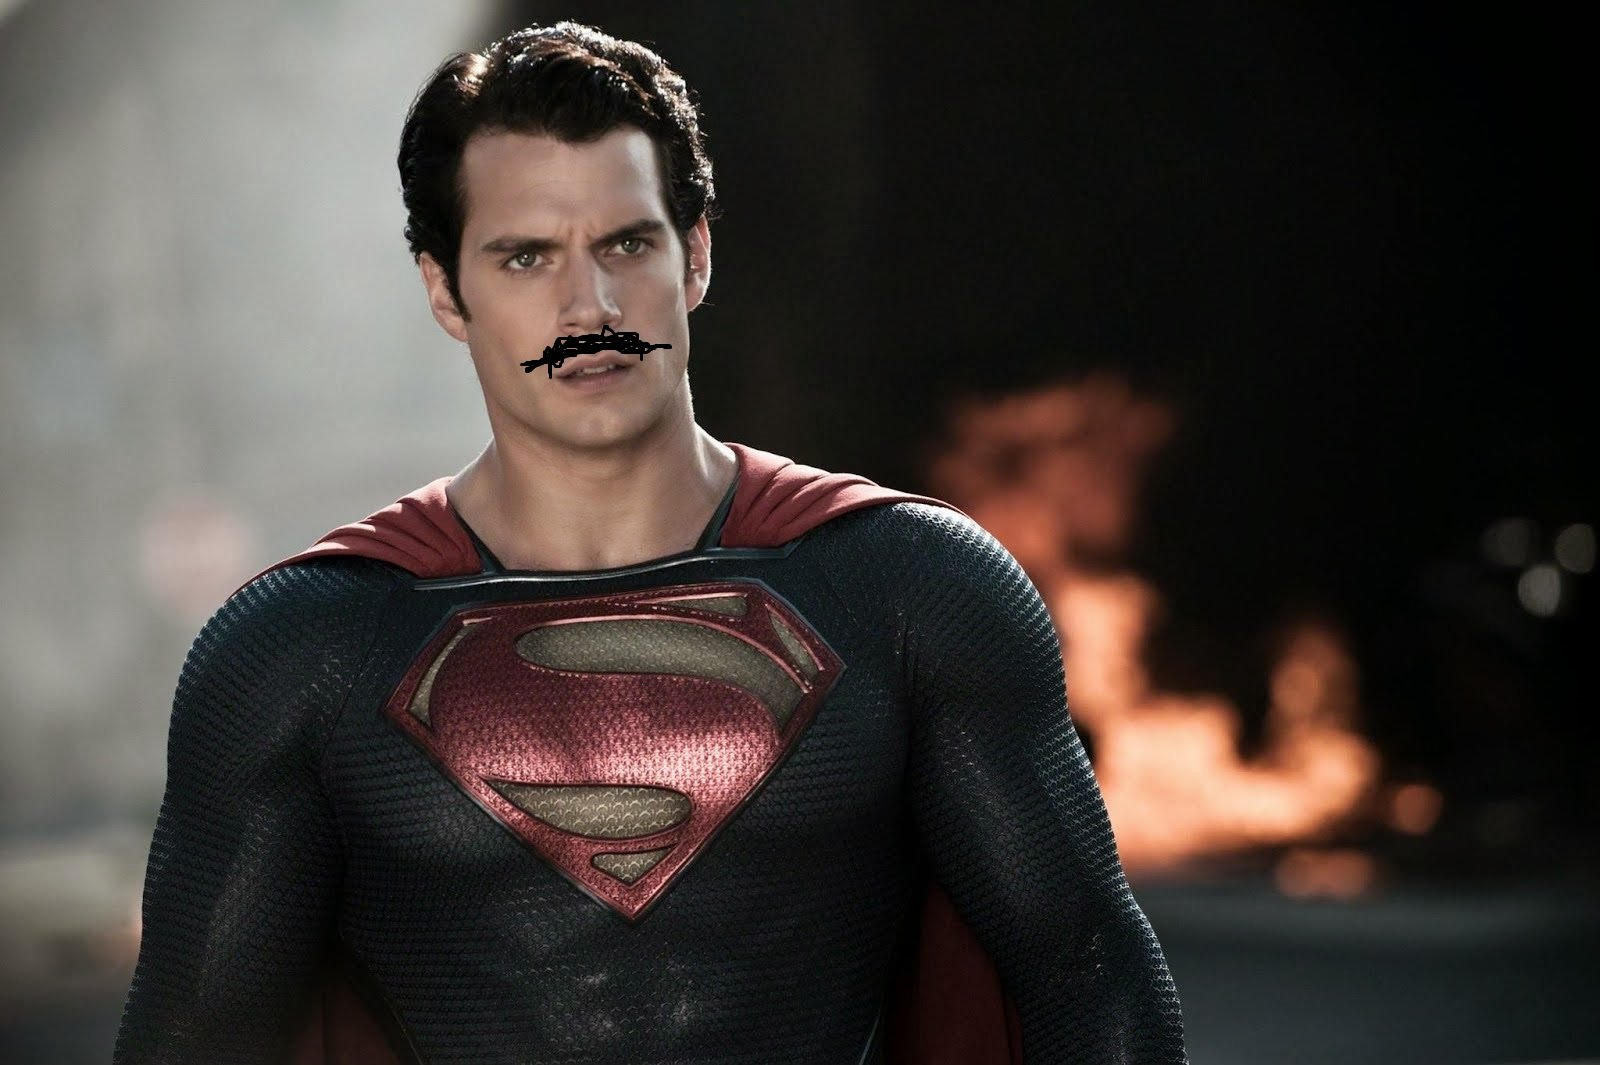 Henry Cavill's mustache will need to be digitally removed for Justice League reshoots screenshot